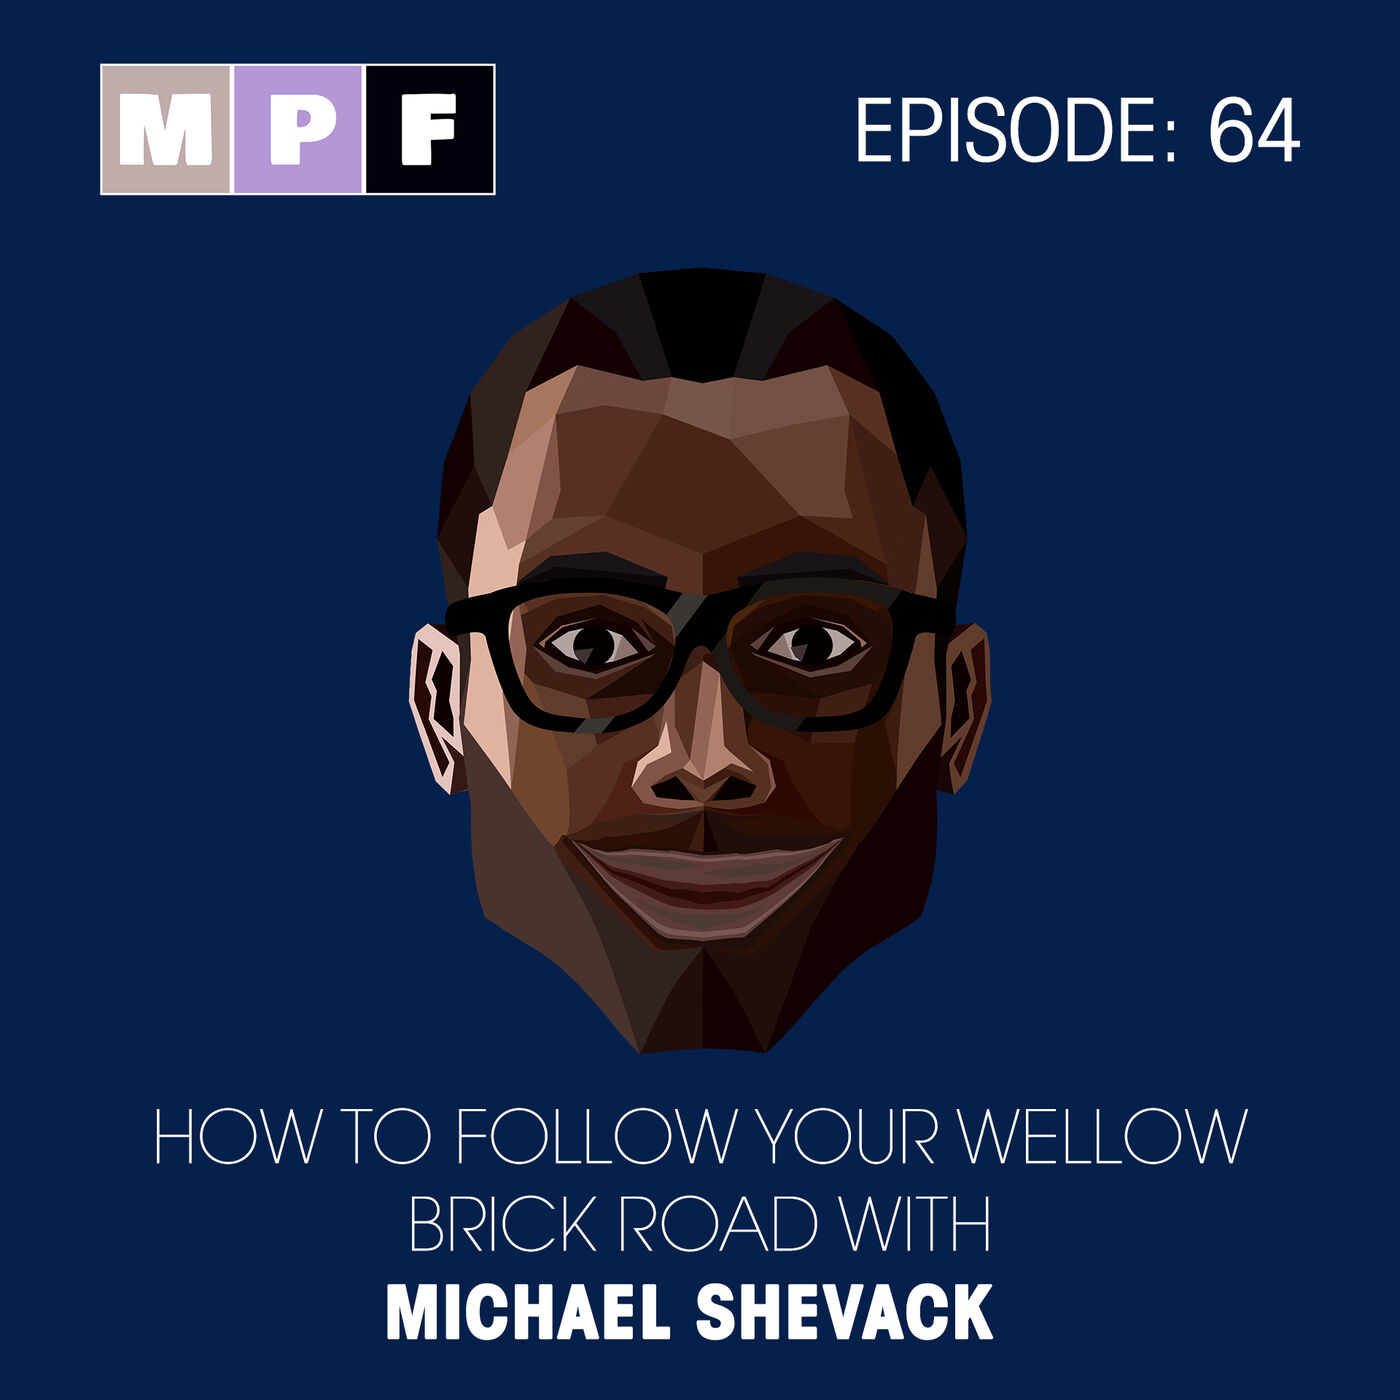 How to Follow Your Yellow Brick Road Michael Shevack